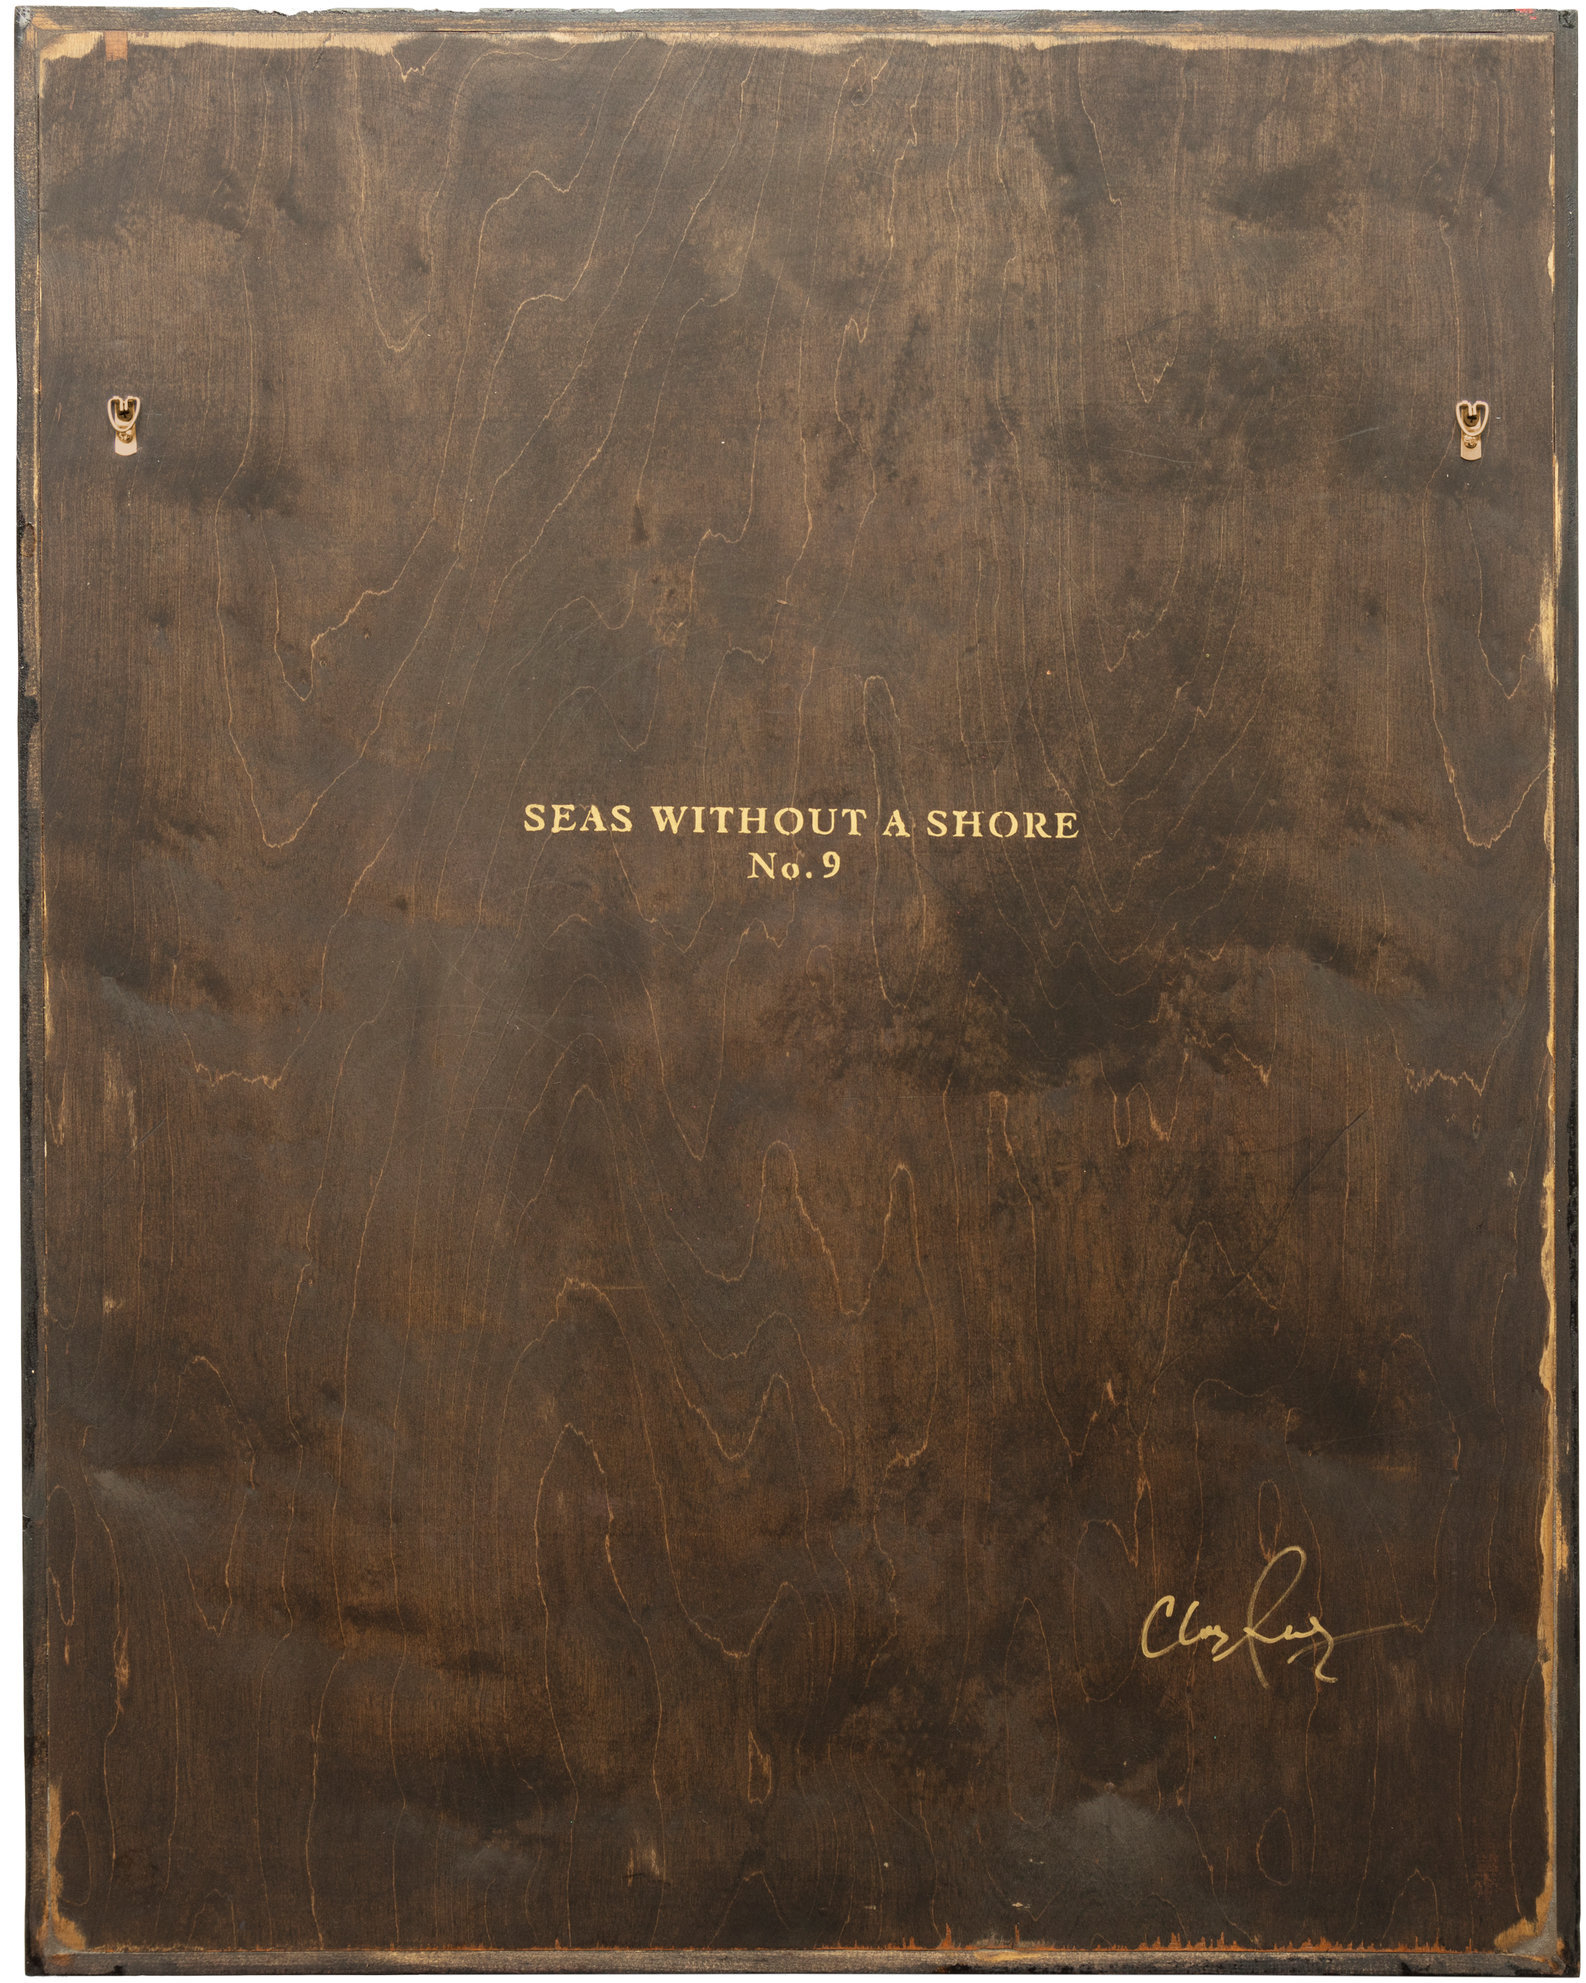 Seas Without A Shore No.9 (back)